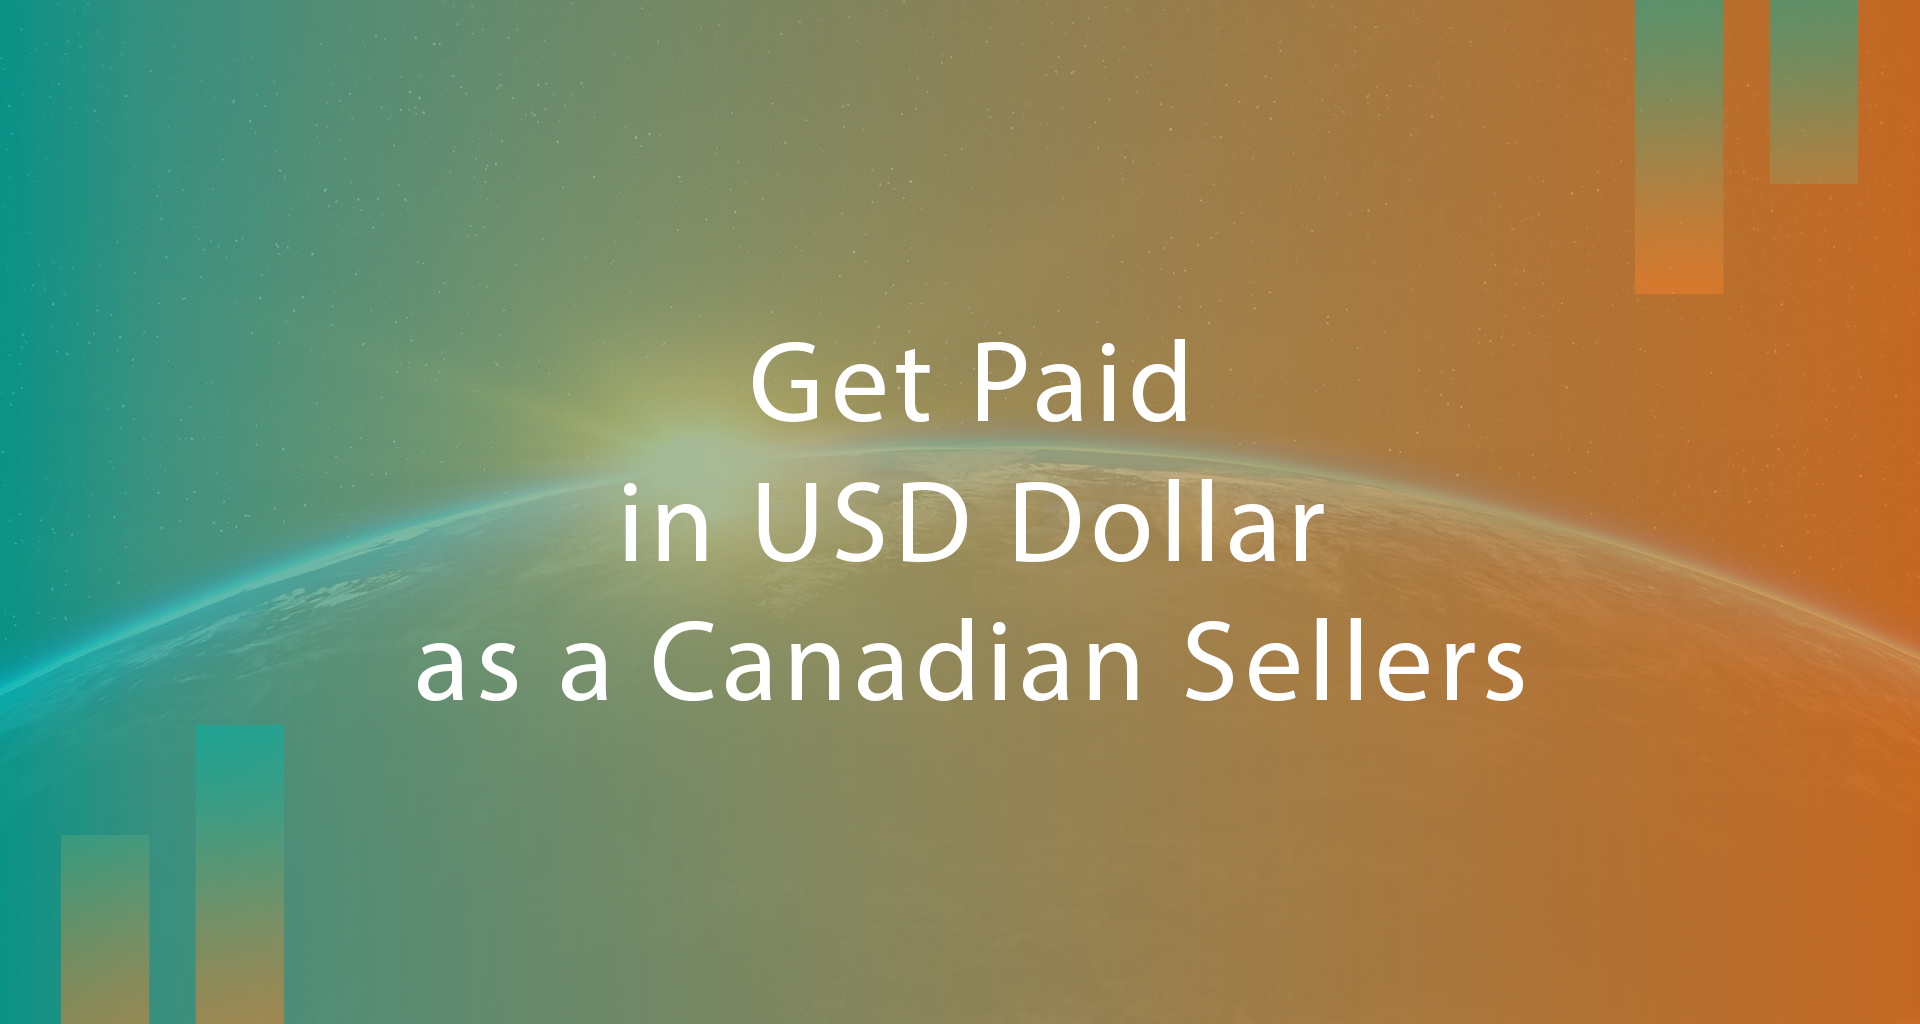 How Canadian Amazon Sellers can get paid in USD? AMZ One Step